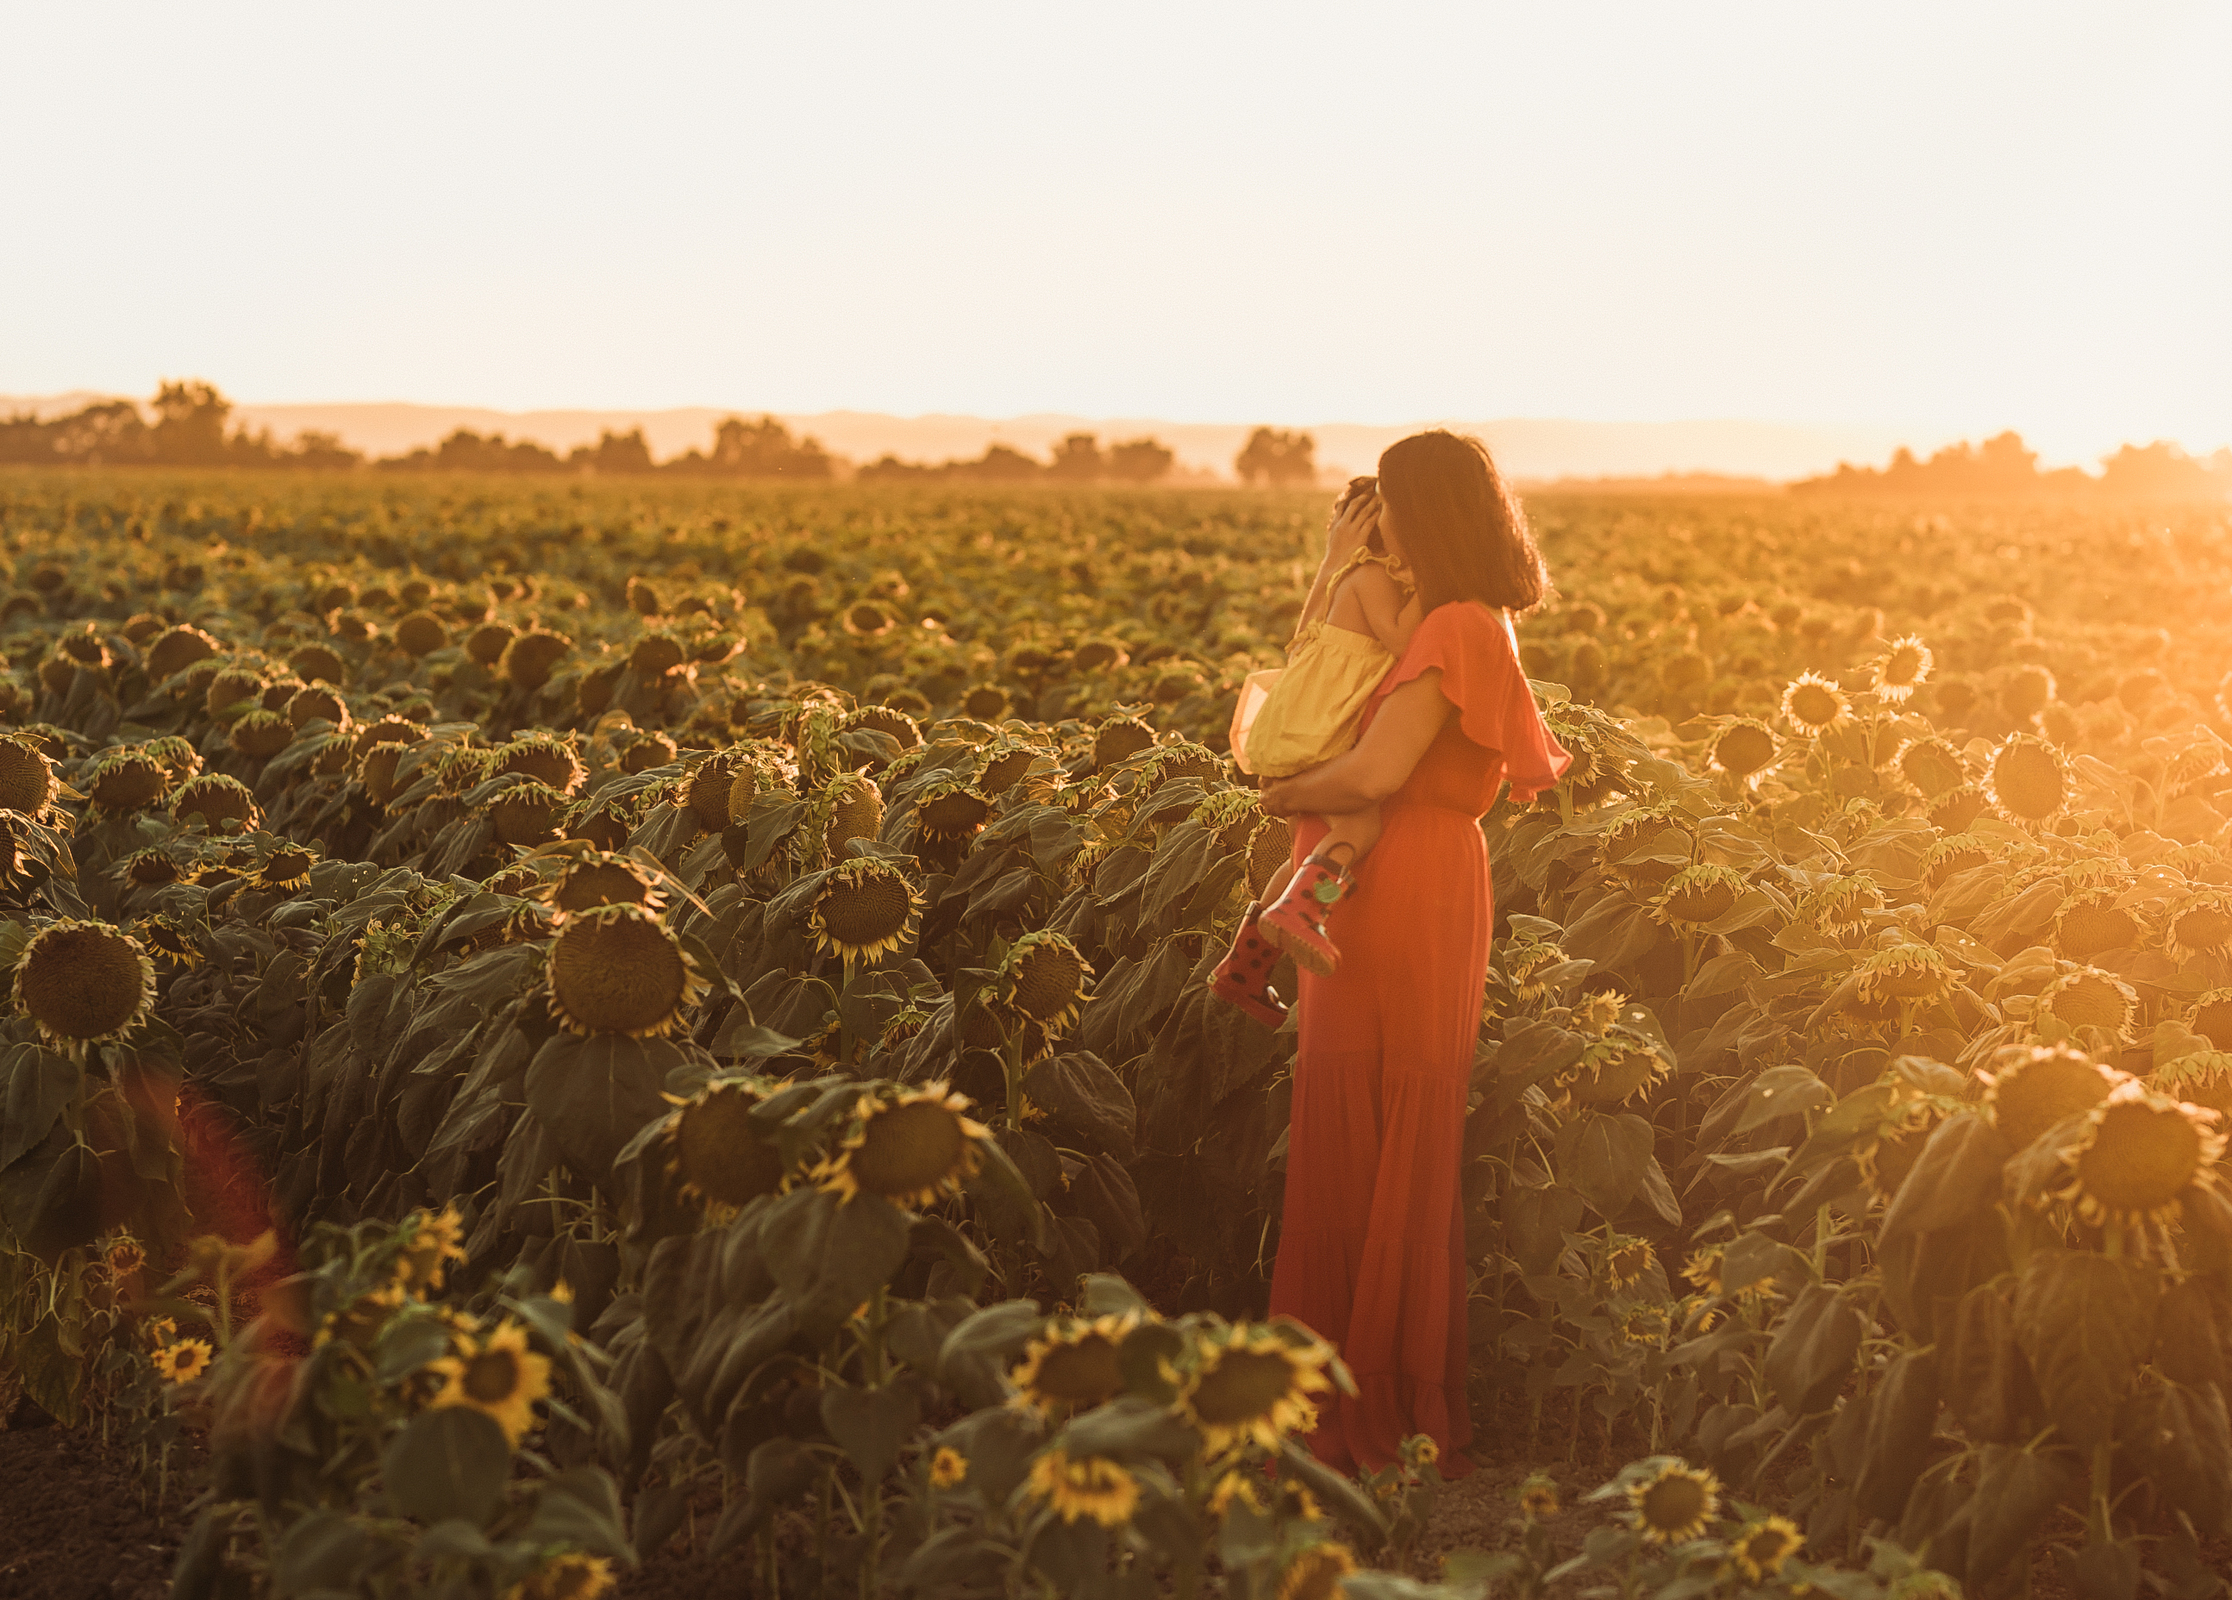 mother holding child in sunflower field in golden sunlight by jyo bhamidipati